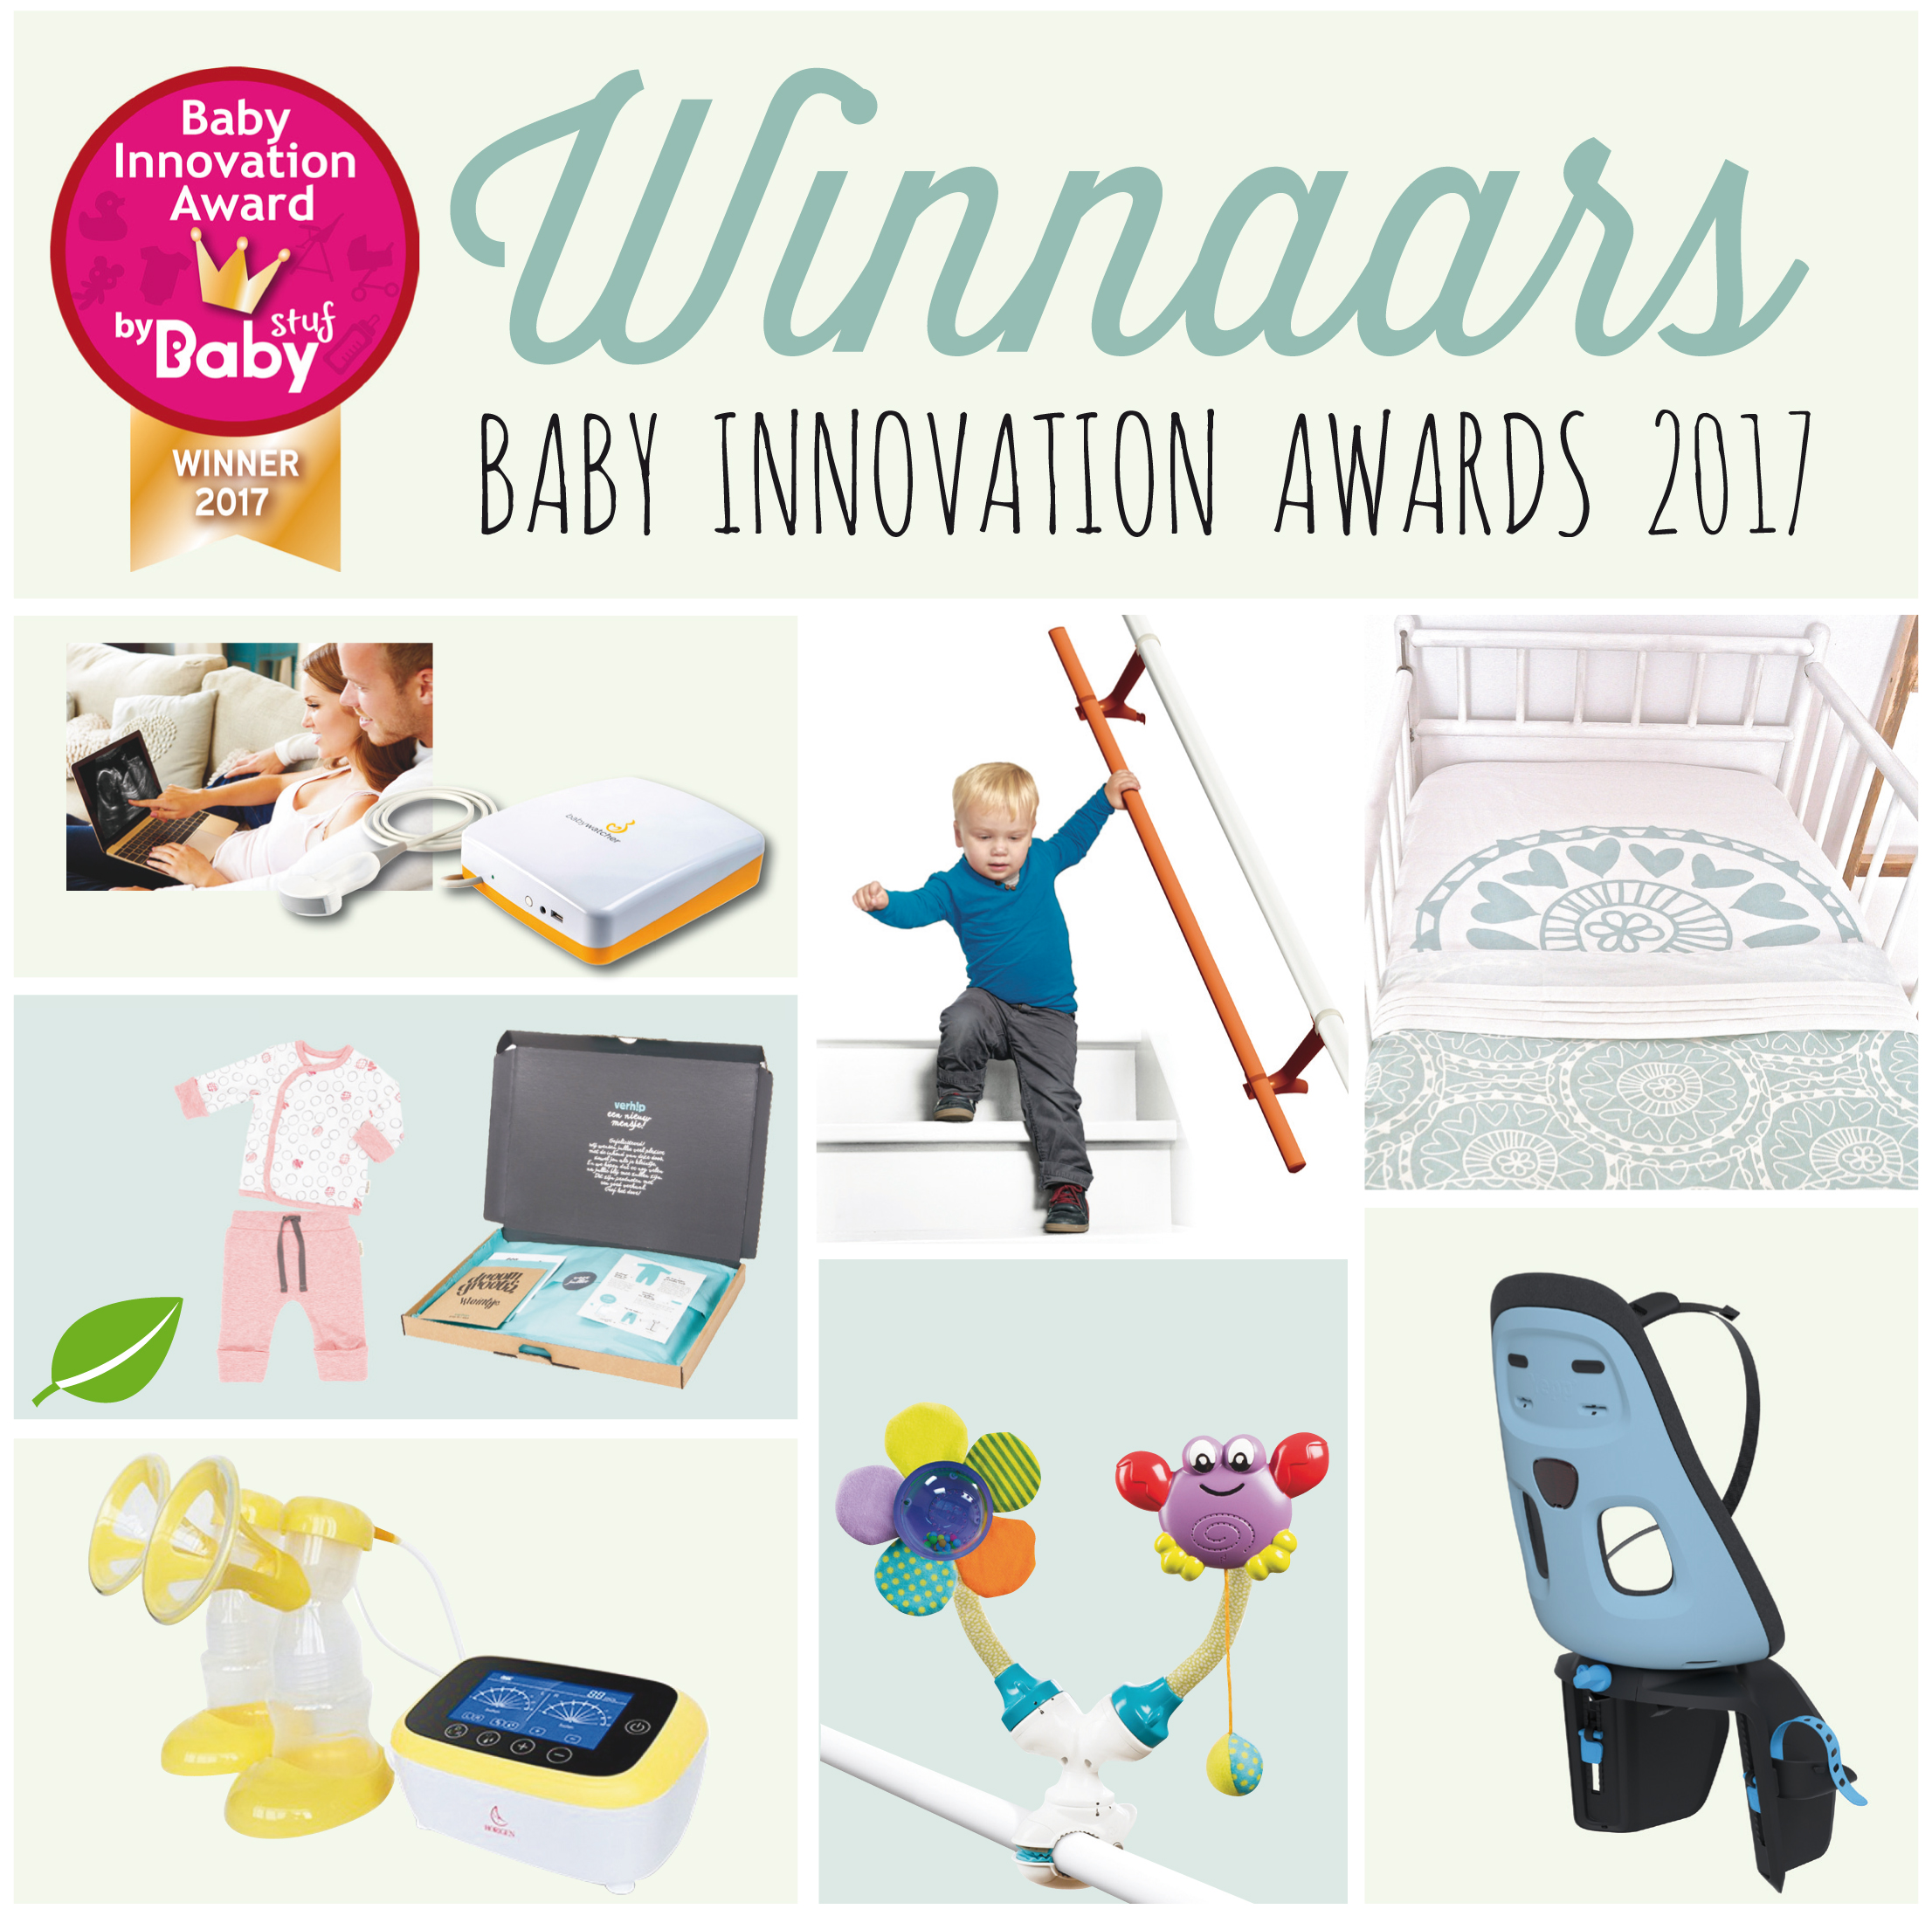 winnaars baby innovation award verkiezing 2017